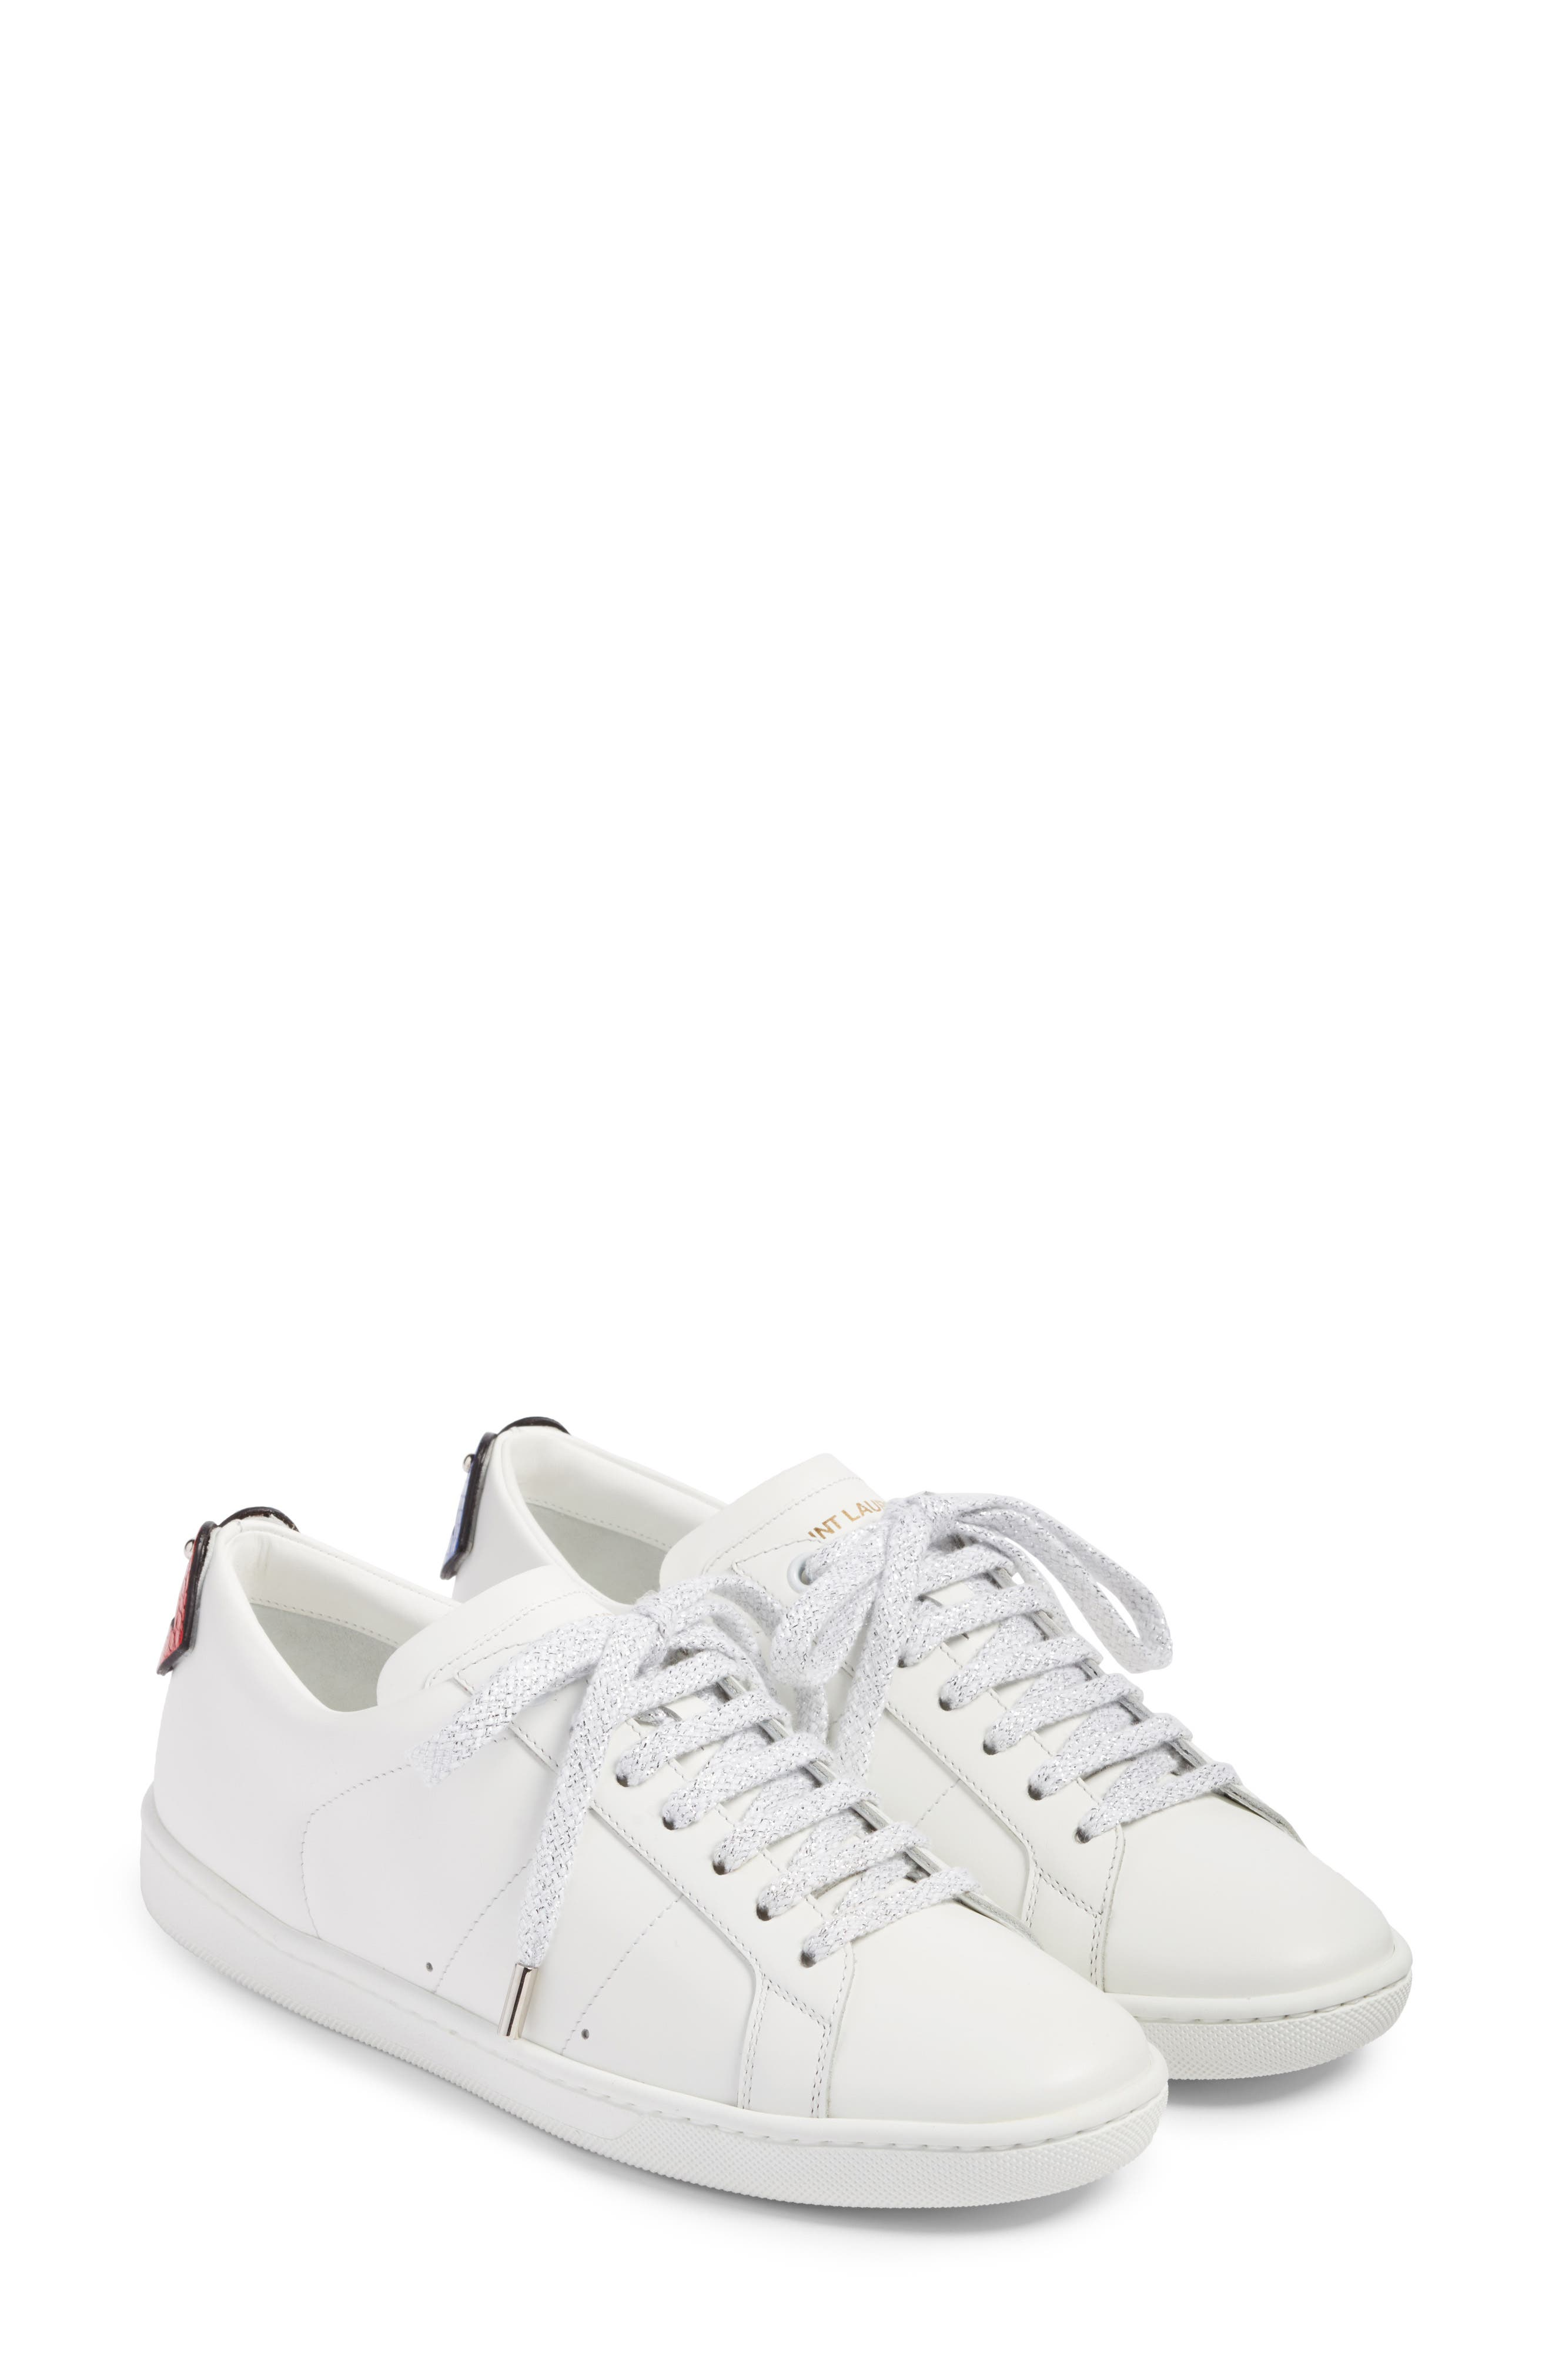 Saint Laurent Court Classic Lips Sneaker (Women)